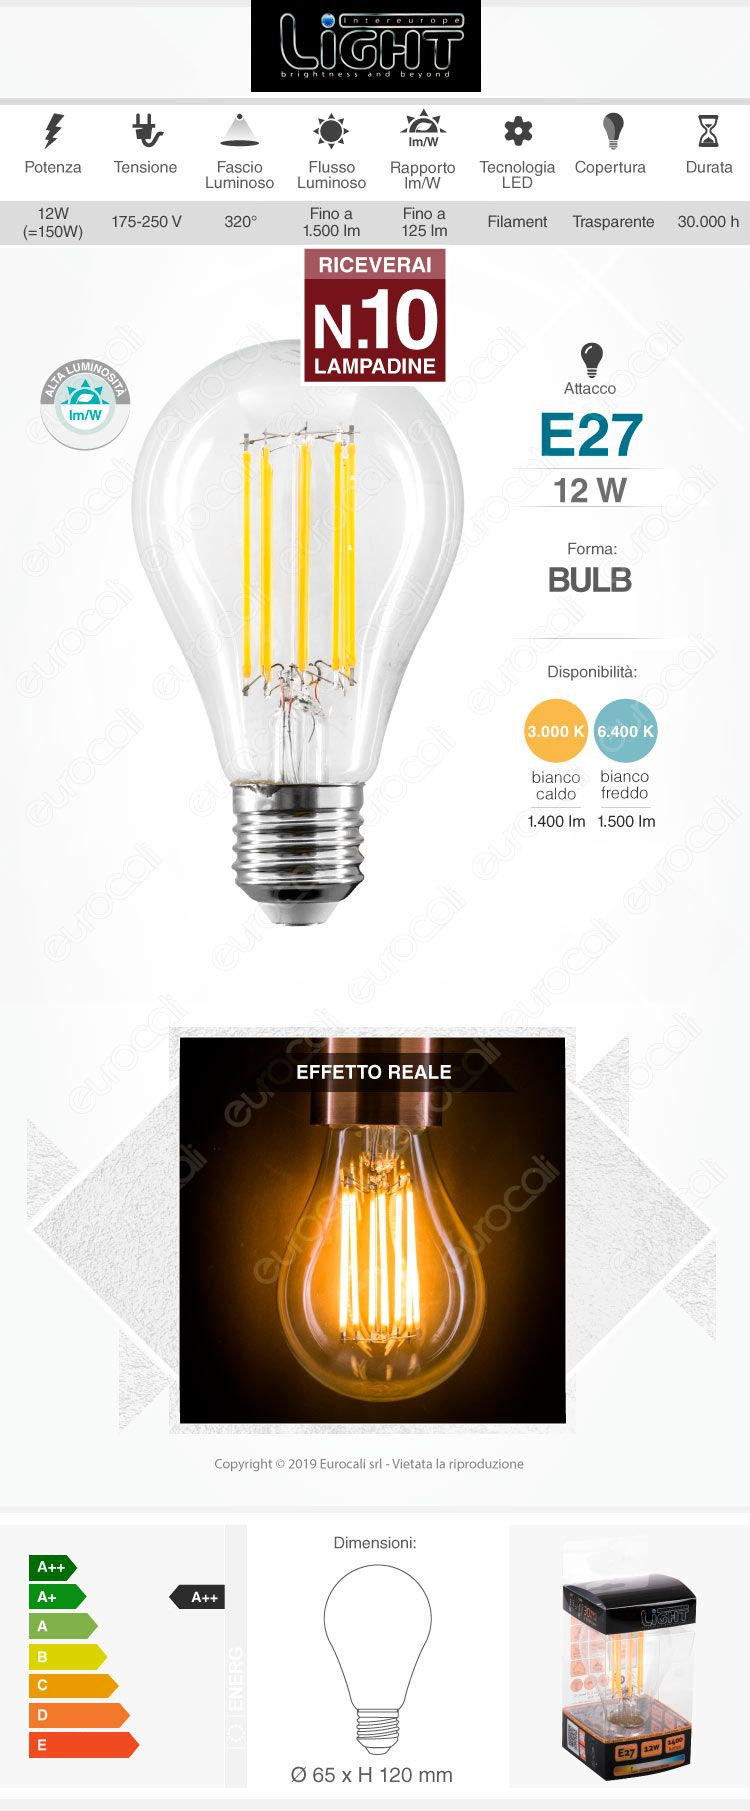 10 Lampadine LED Intereurope Light E27 12W Bulb A65 Filamento - Pack Risparmio